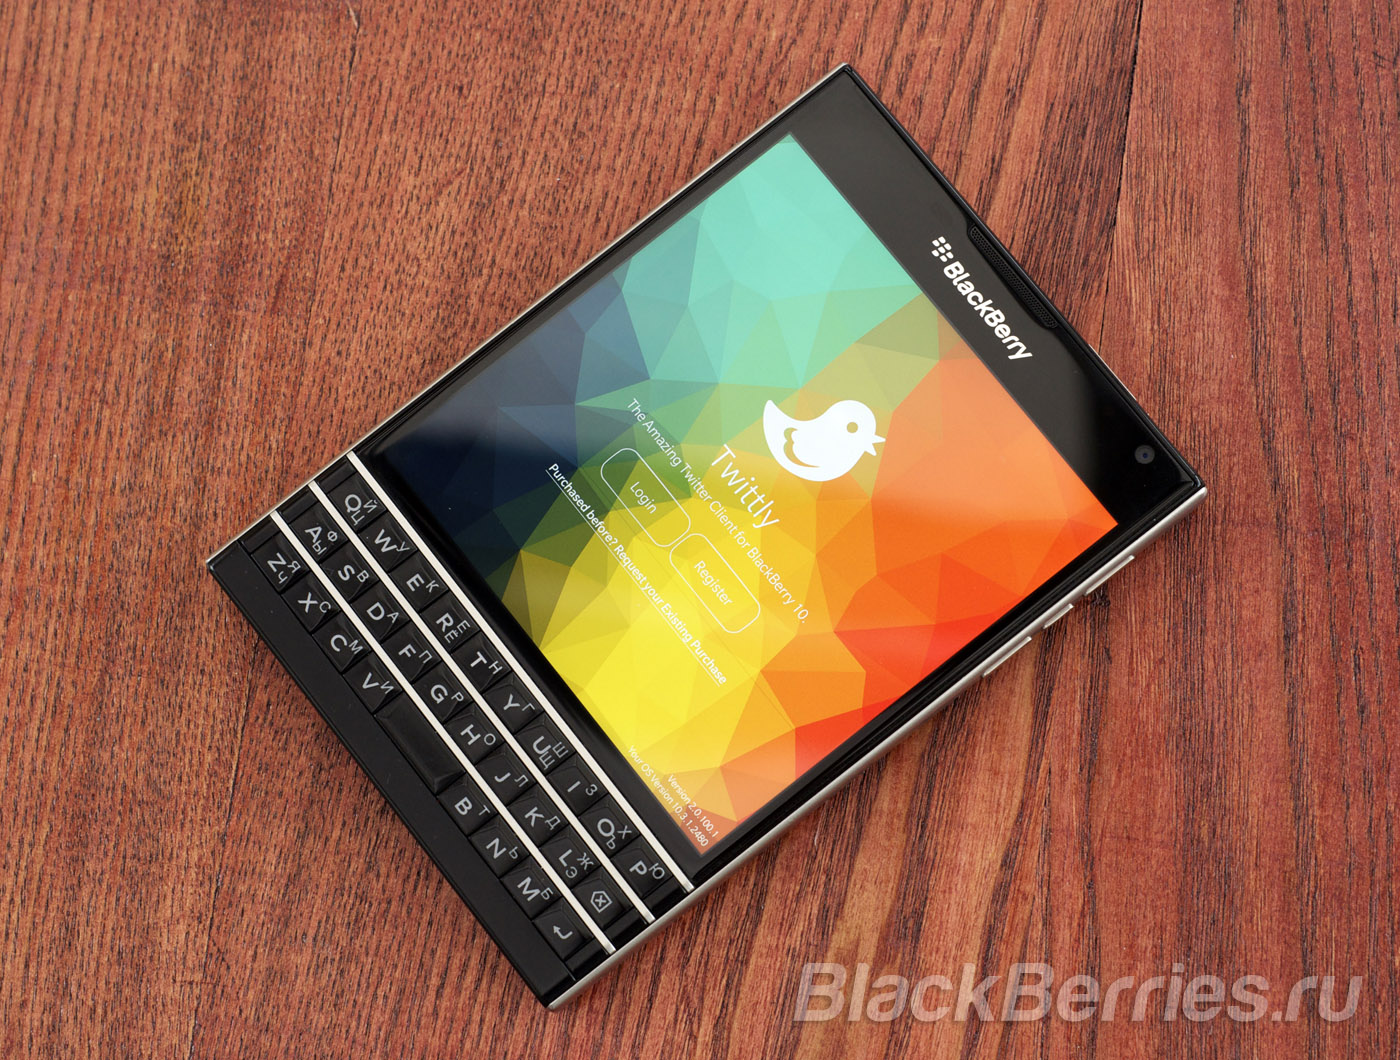 BlackBerry-Passport-Twittly-5